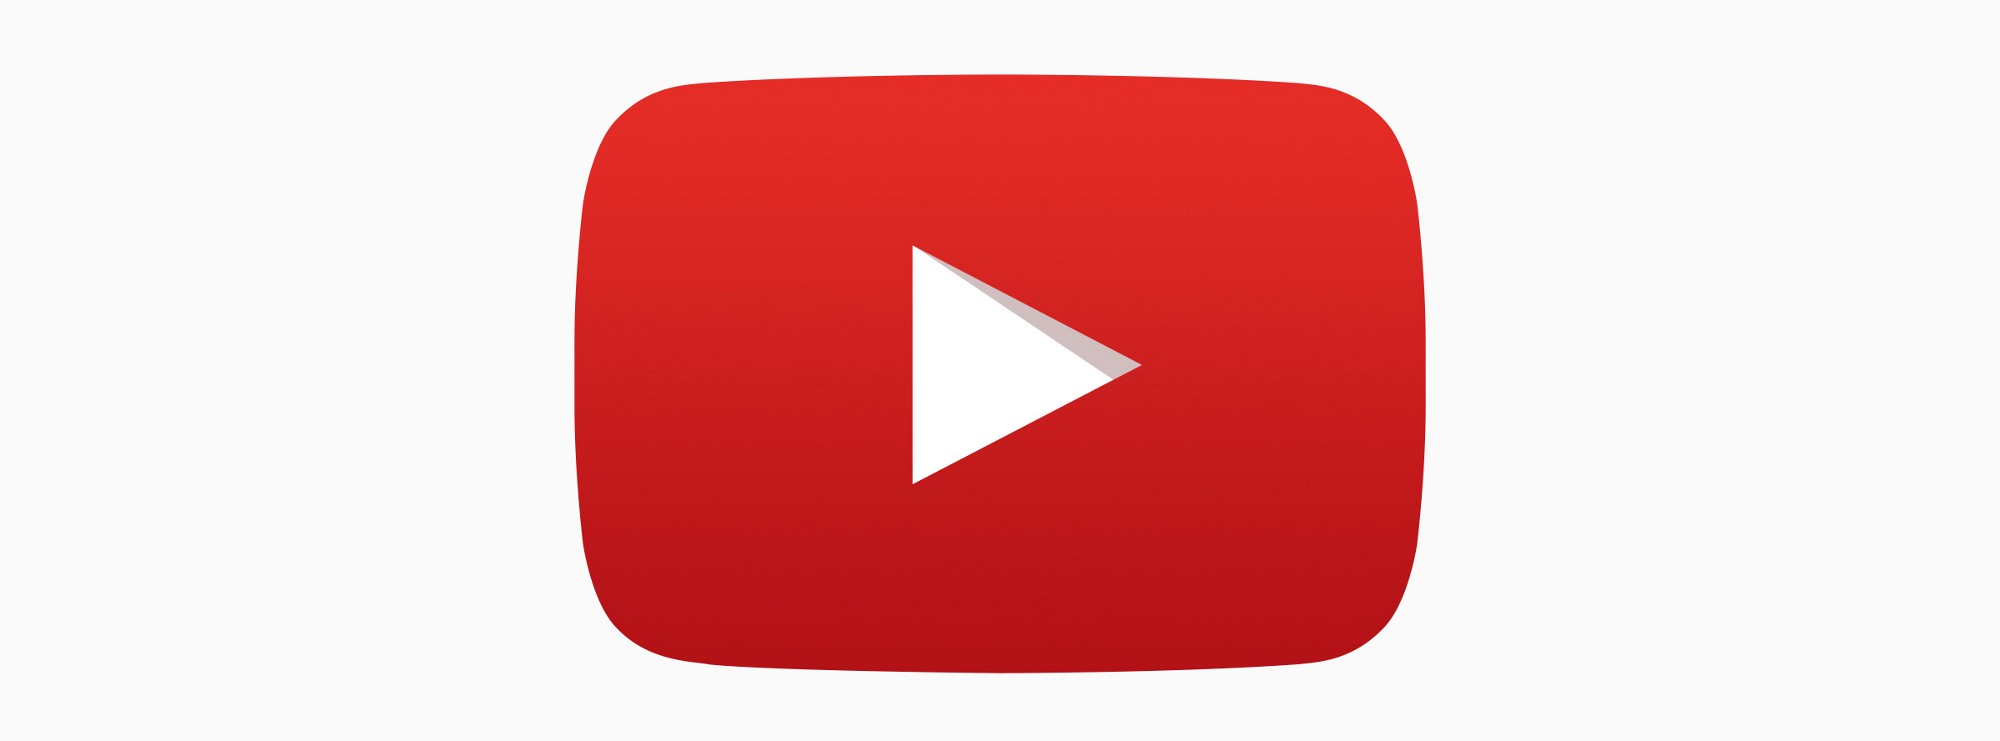 youtube app logo image collections